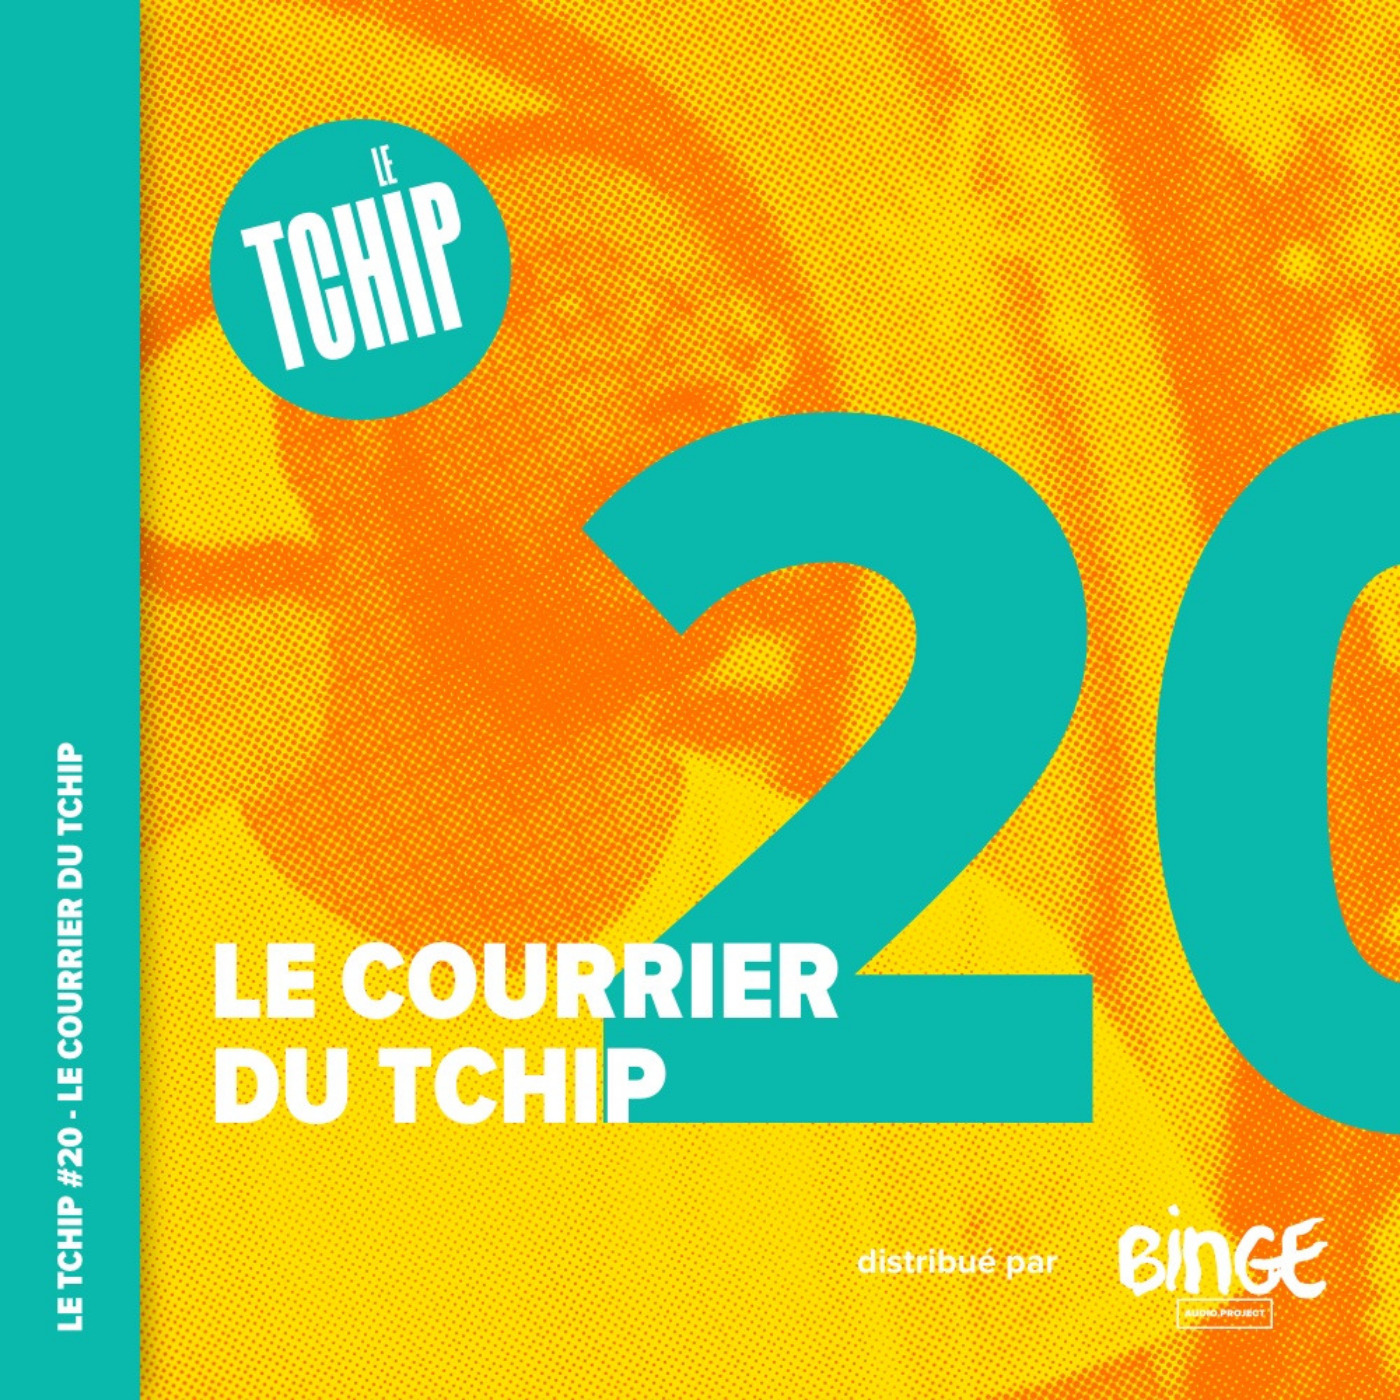 #20 - Le courrier du Tchip